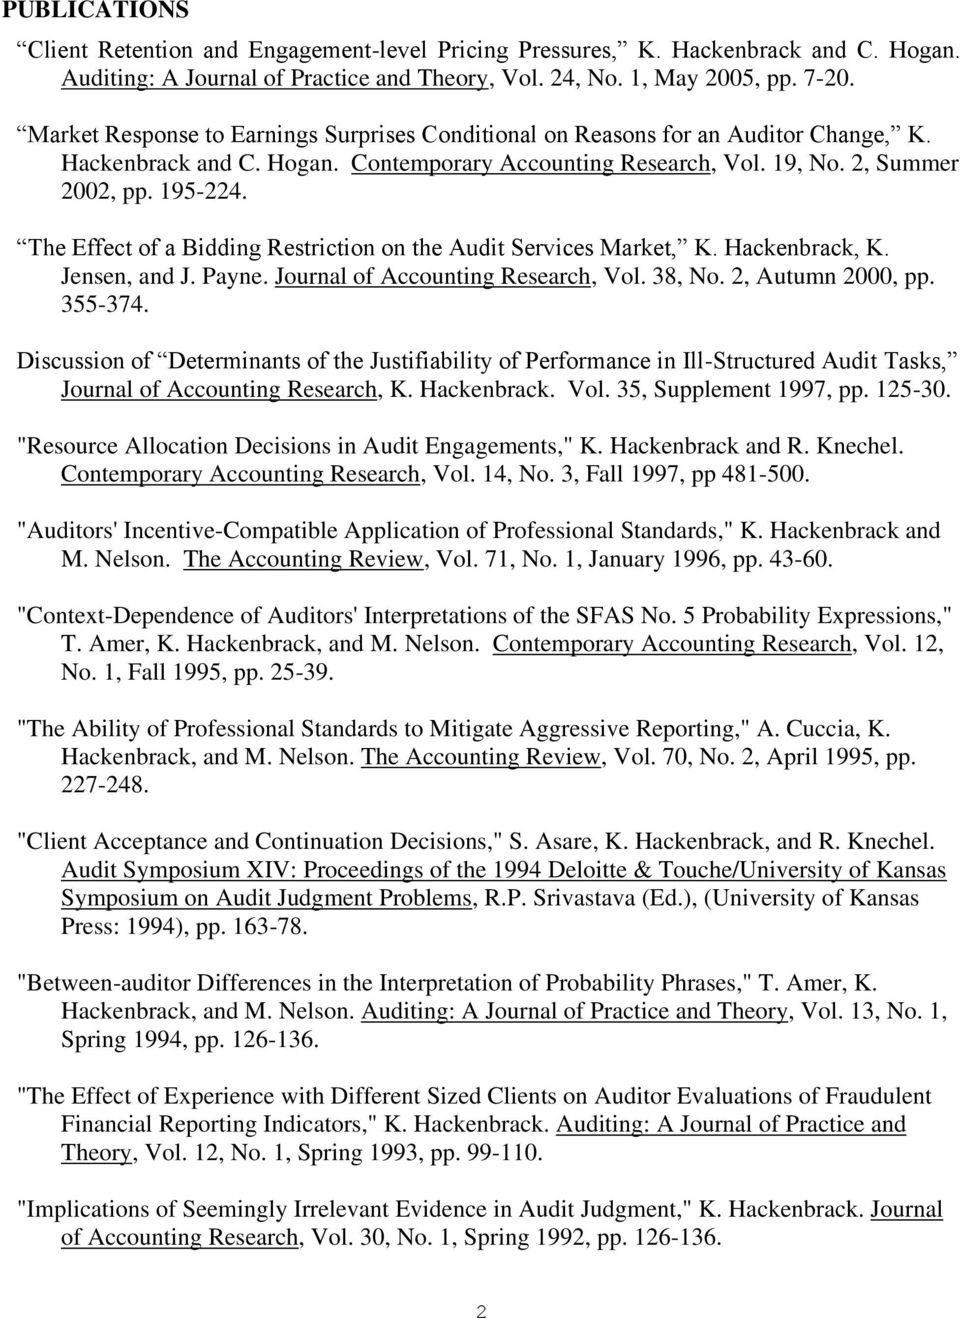 The Effect of a Bidding Restriction on the Audit Services Market, K. Hackenbrack, K. Jensen, and J. Payne. Journal of Accounting Research, Vol. 38, No. 2, Autumn 2000, pp. 355-374.